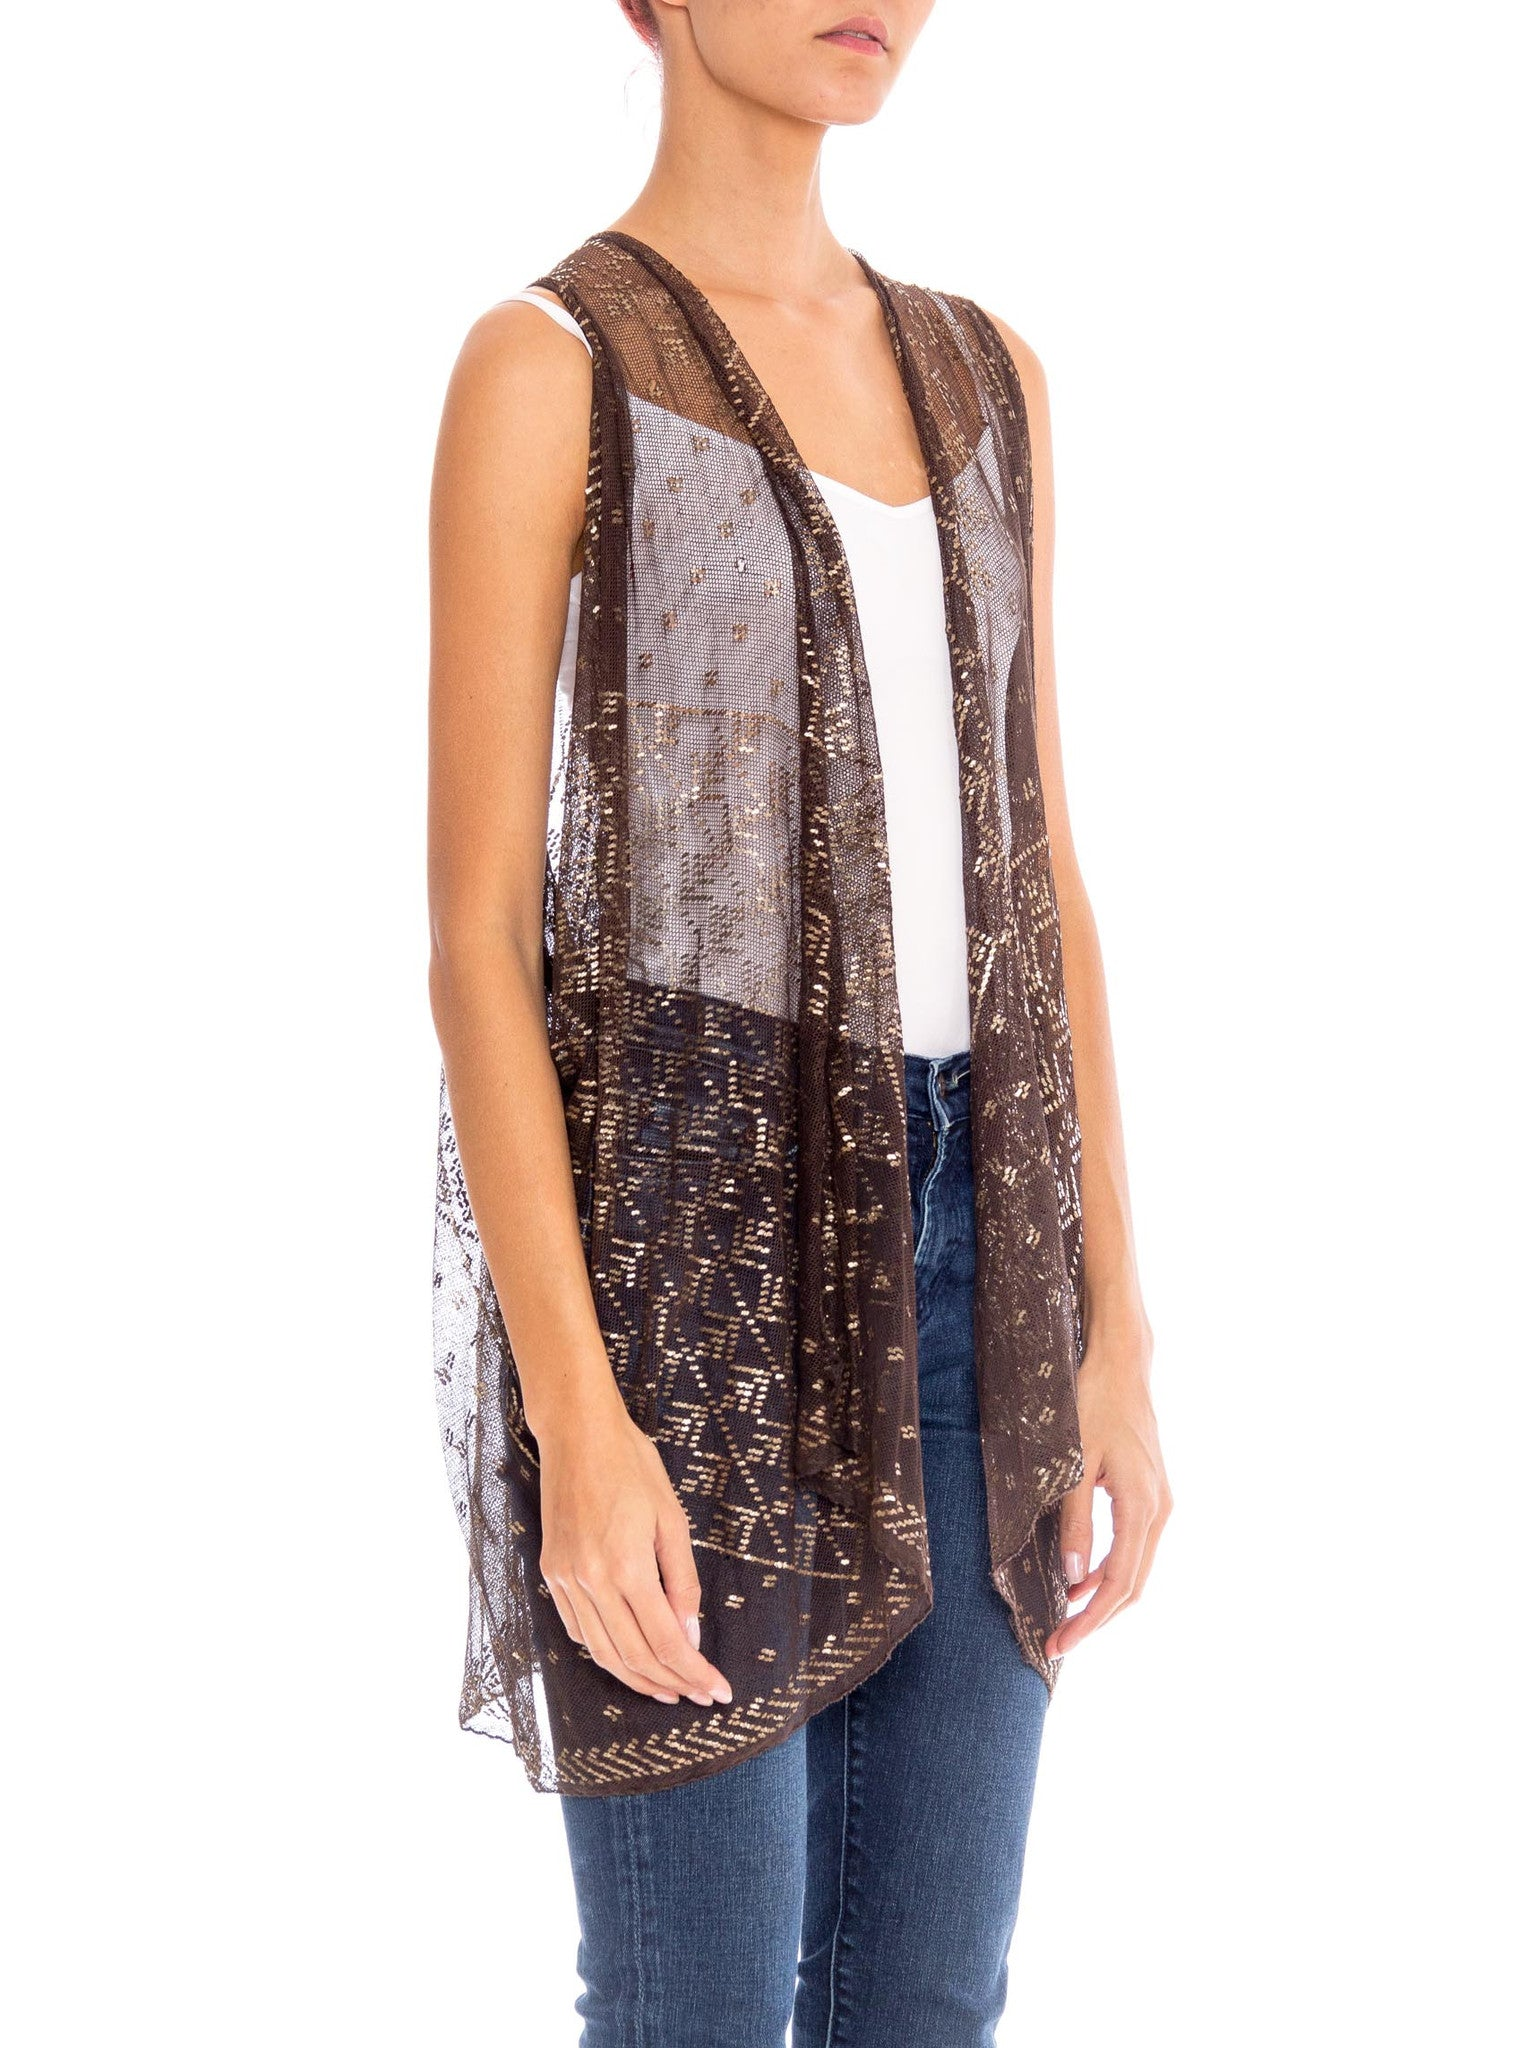 MORPHEW COLLECTION Chocolate Brown & Silver Egyptian Assuit Sheer Draped Vest